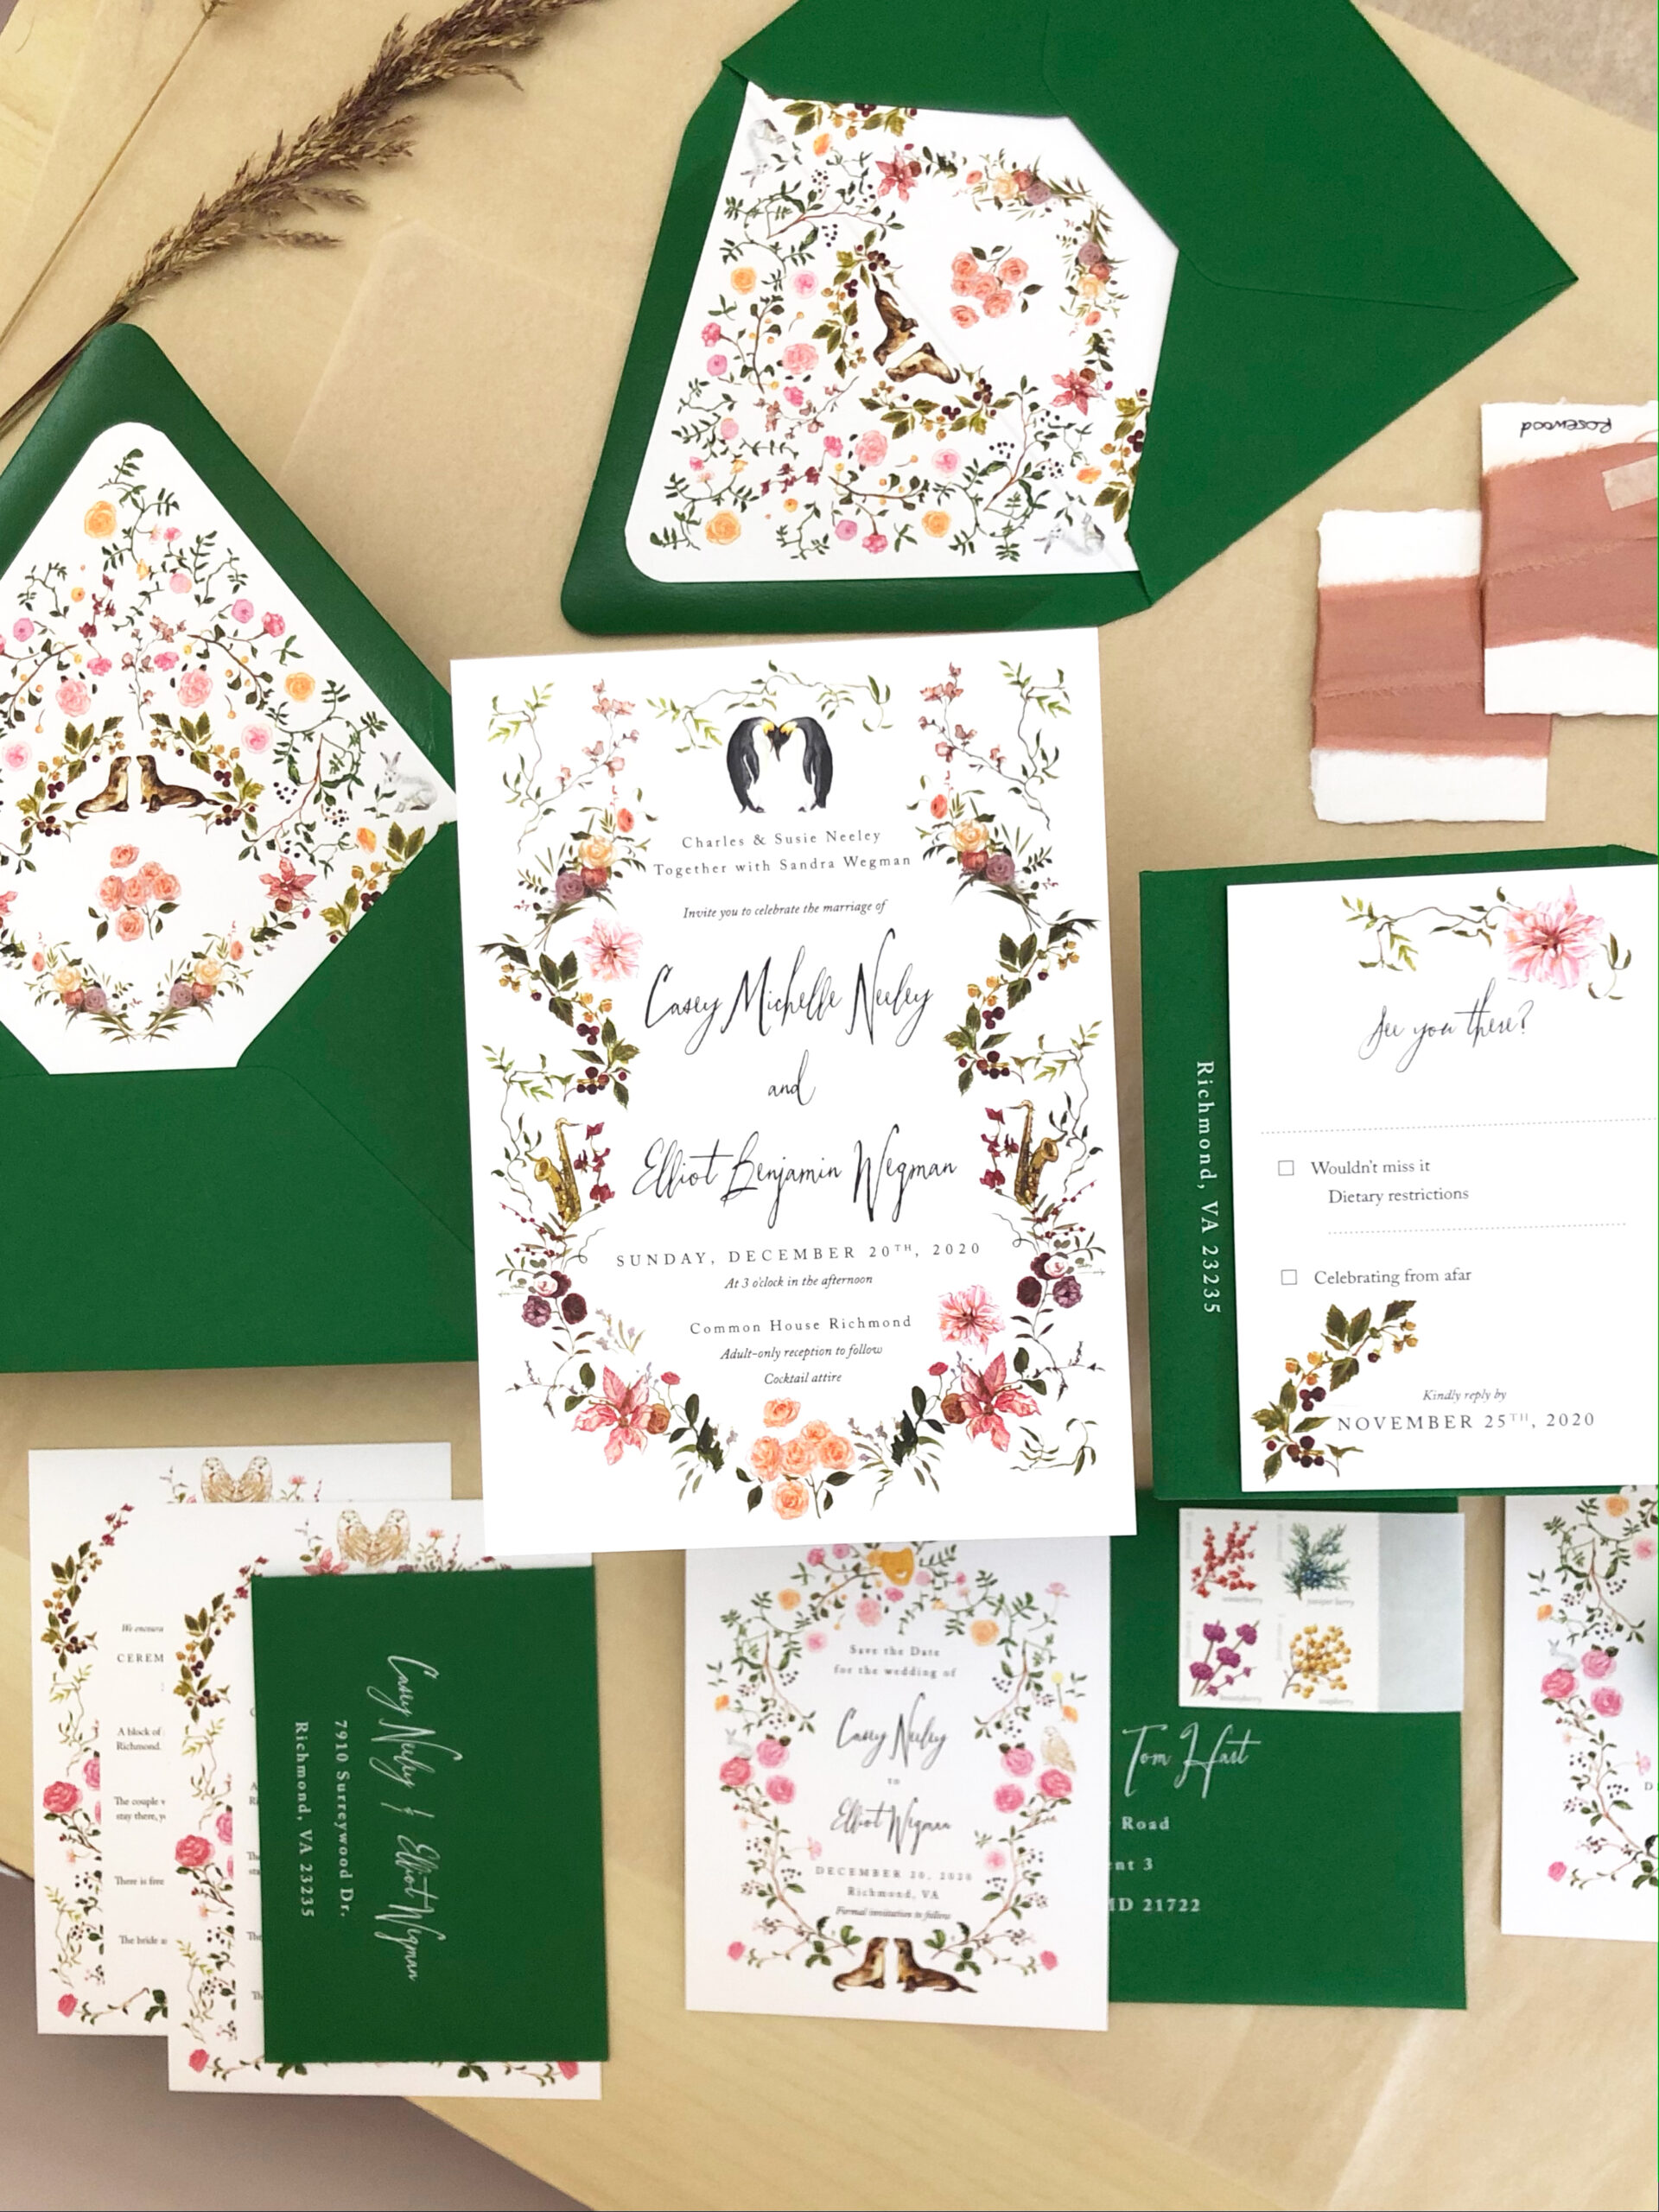 Casey & Elliot winter wedding stationery green envelope